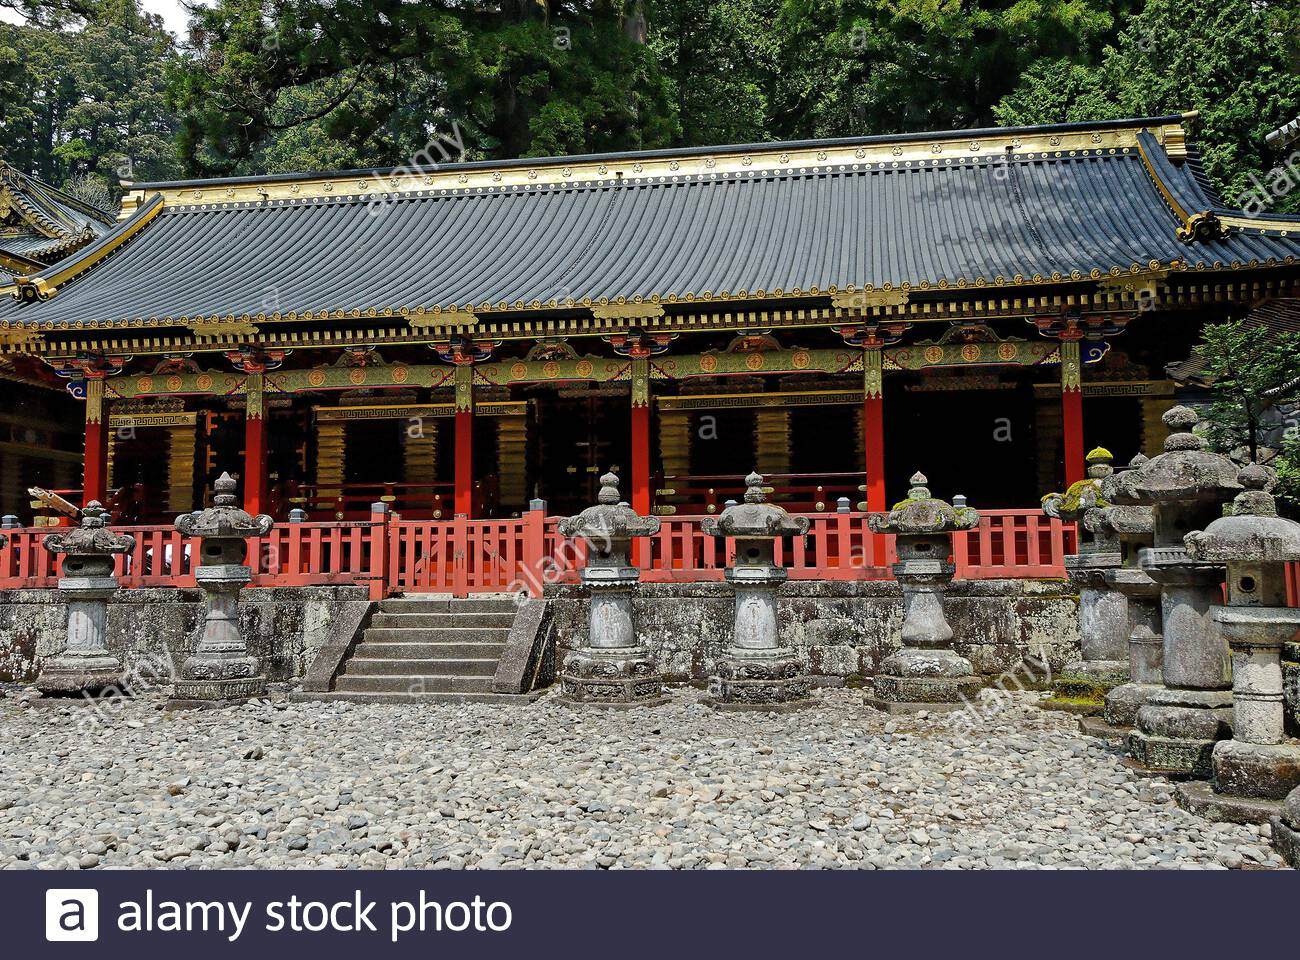 motor Parte limpiar  Niko (Japan Stock Photo: 334612283 - Alamy